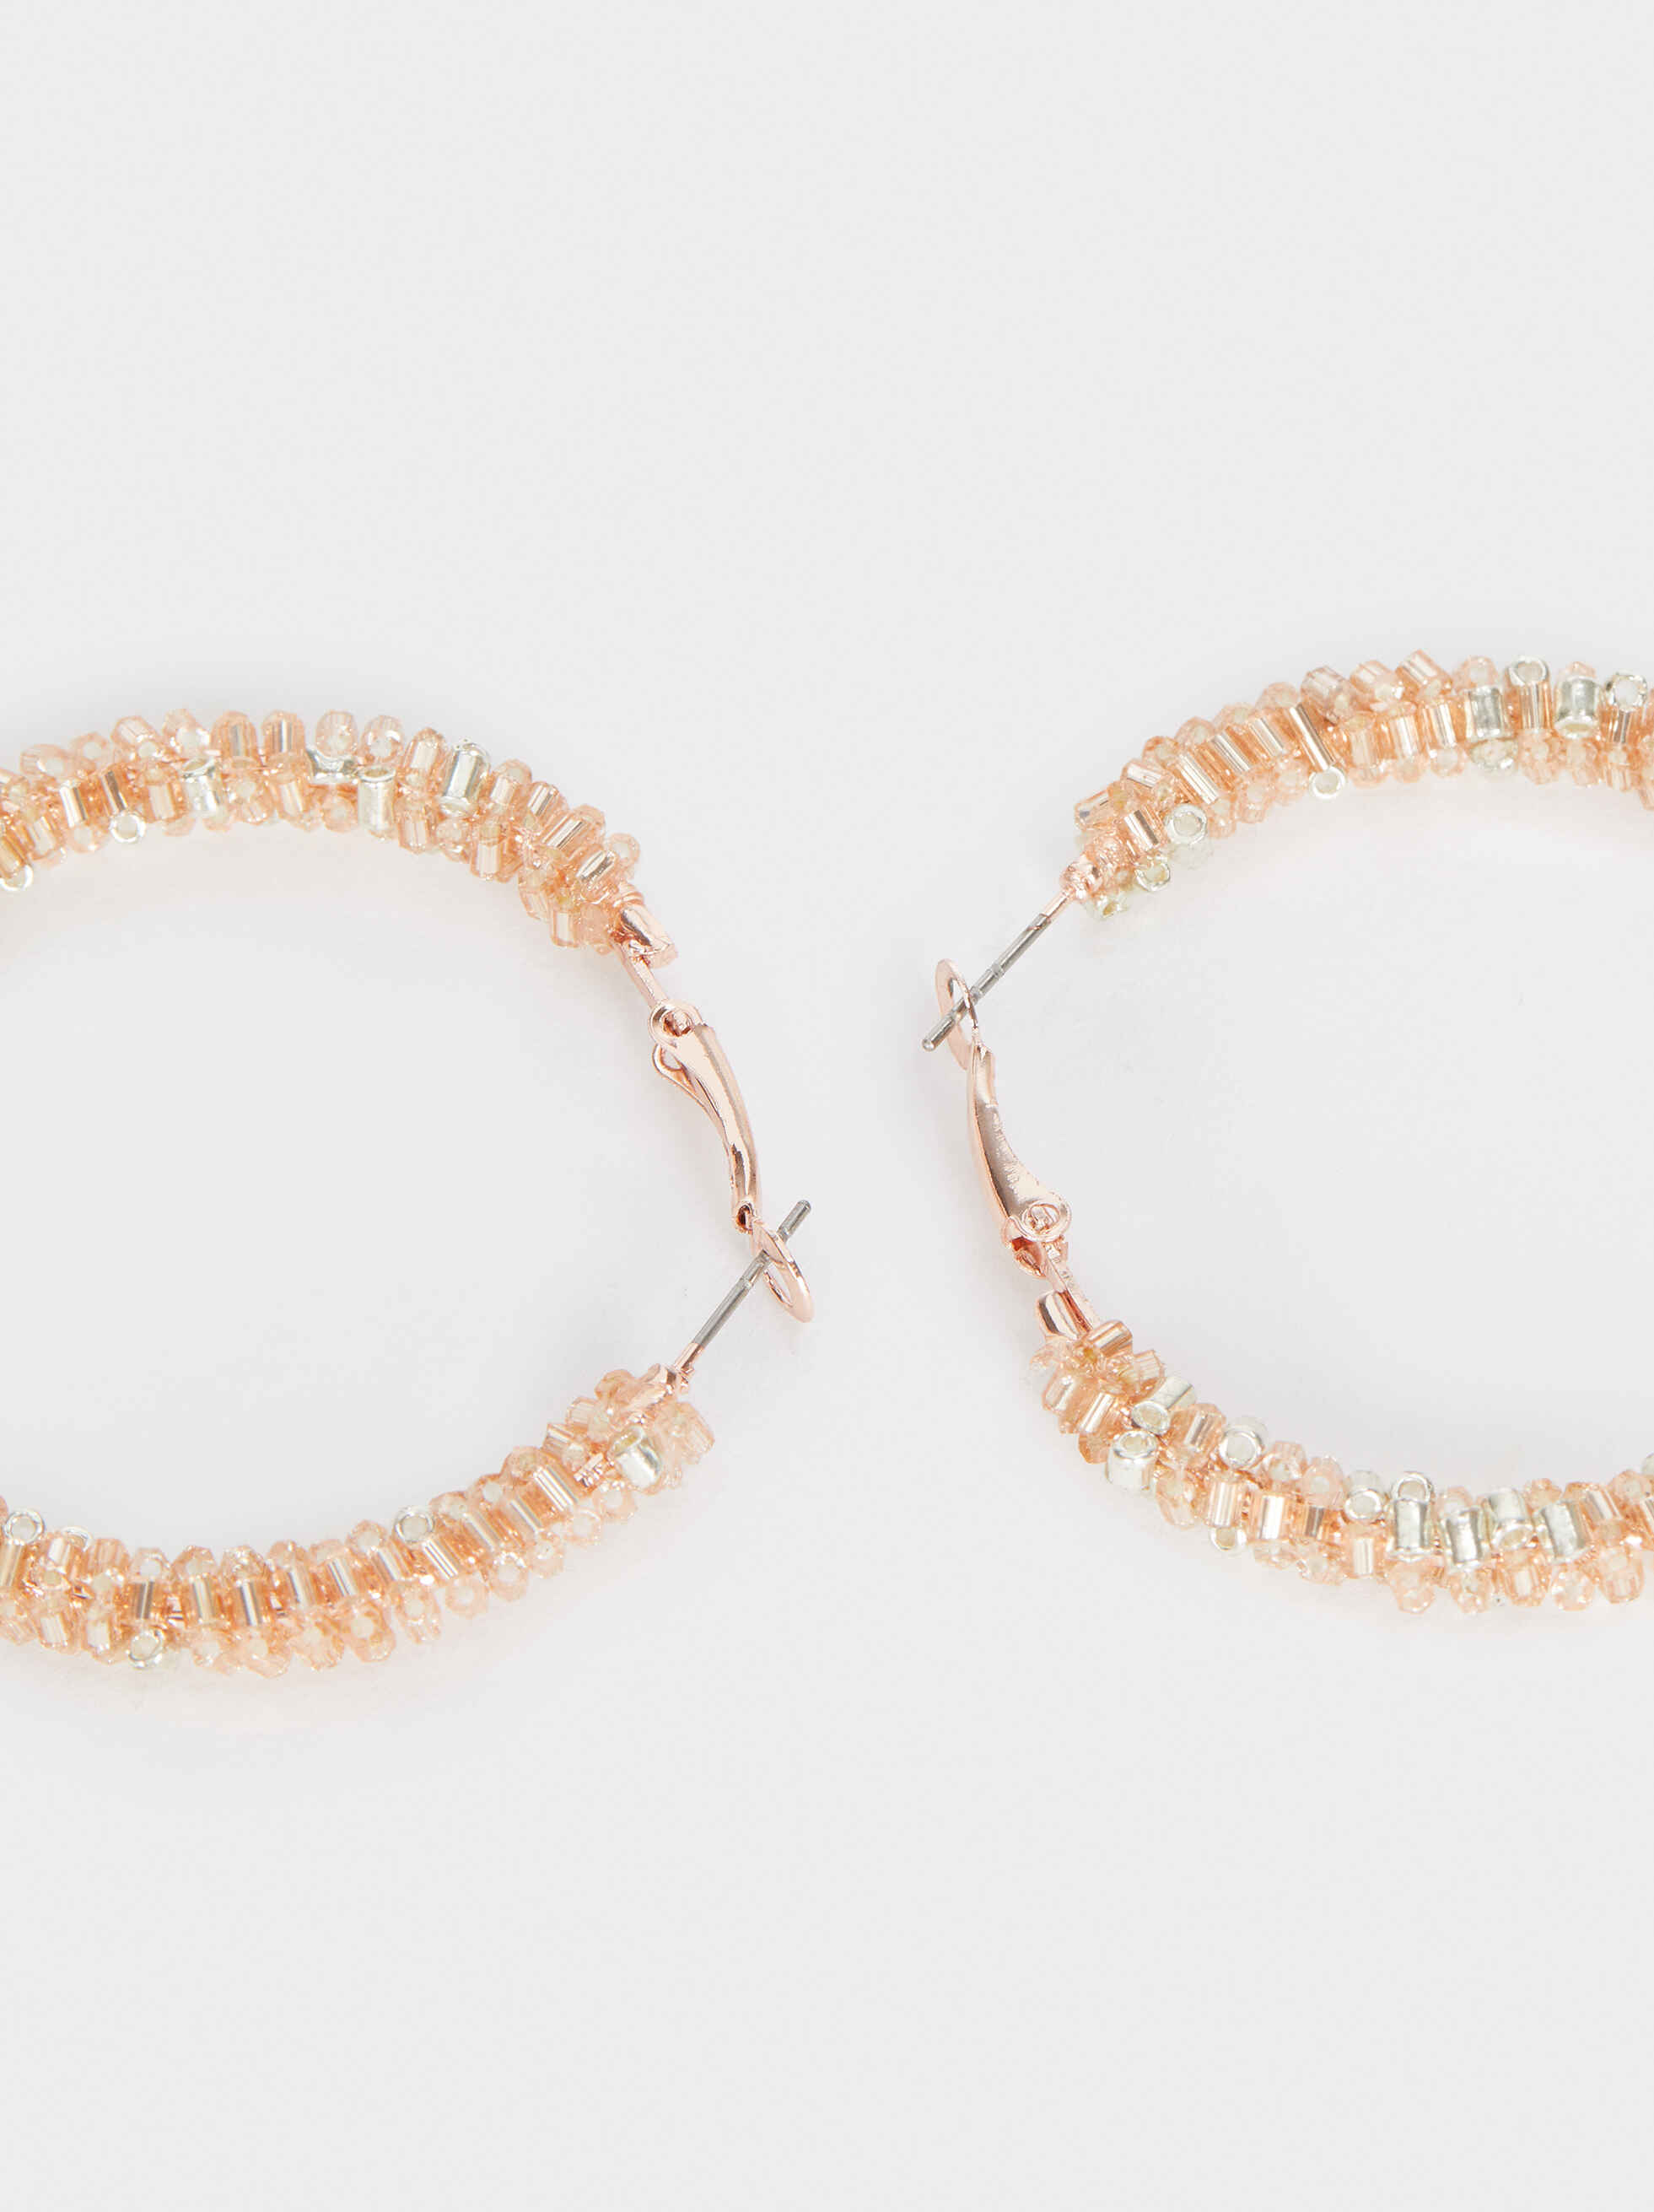 Medium Hoop Earrings With Shiny Beading, Orange, hi-res